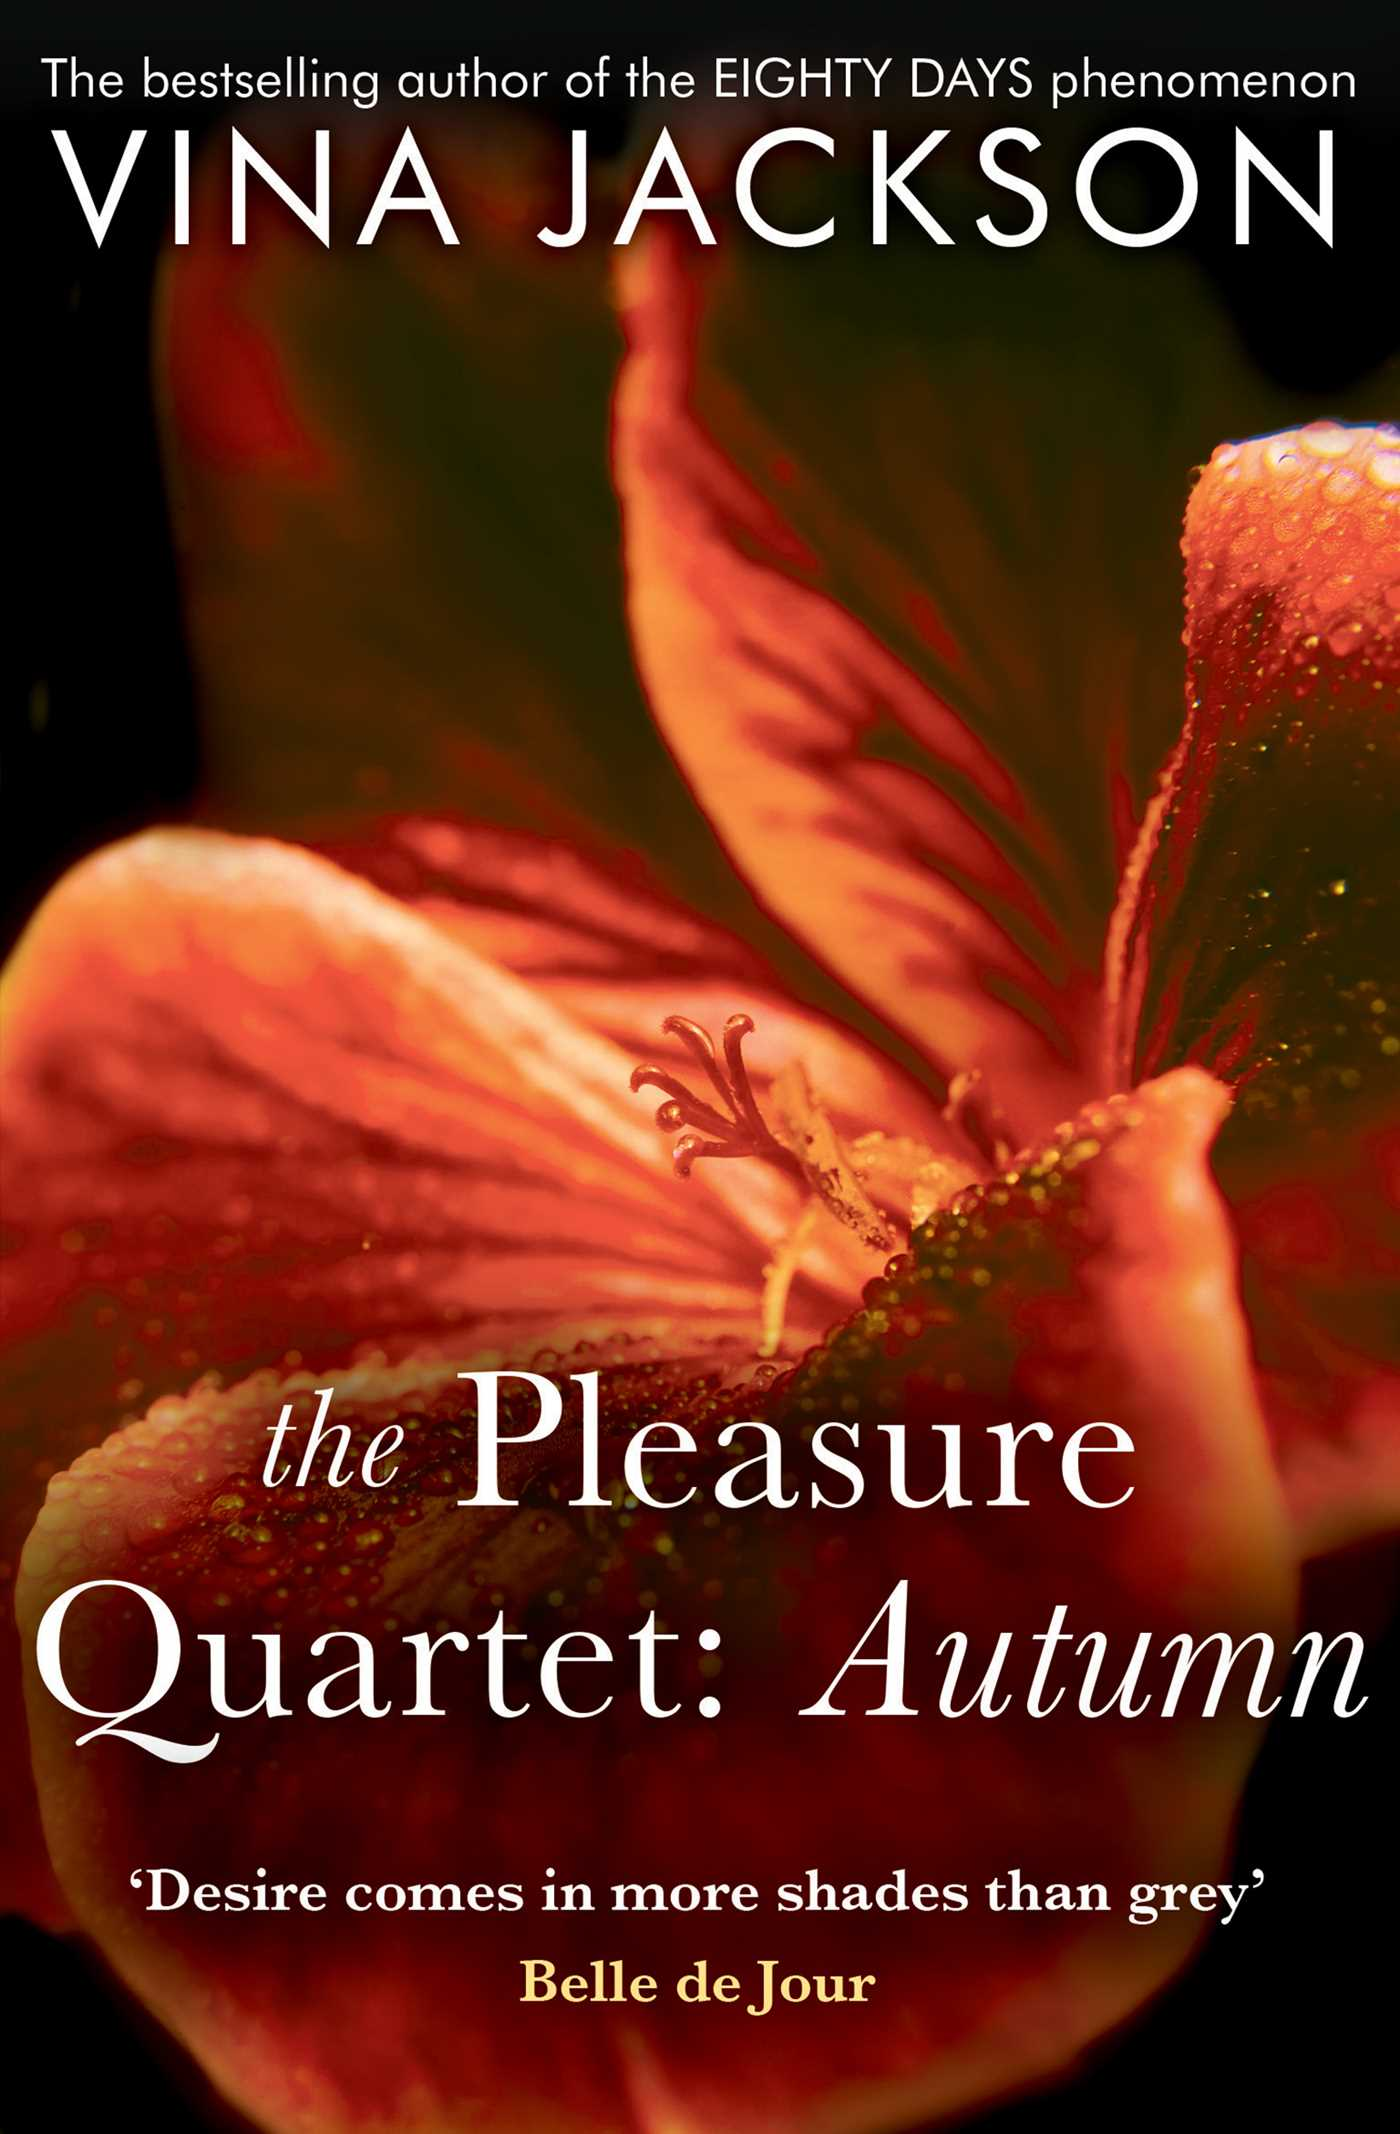 The pleasure quartet autumn ebook by vina jackson official book cover image jpg the pleasure quartet autumn ebook 9781471141522 fandeluxe Gallery